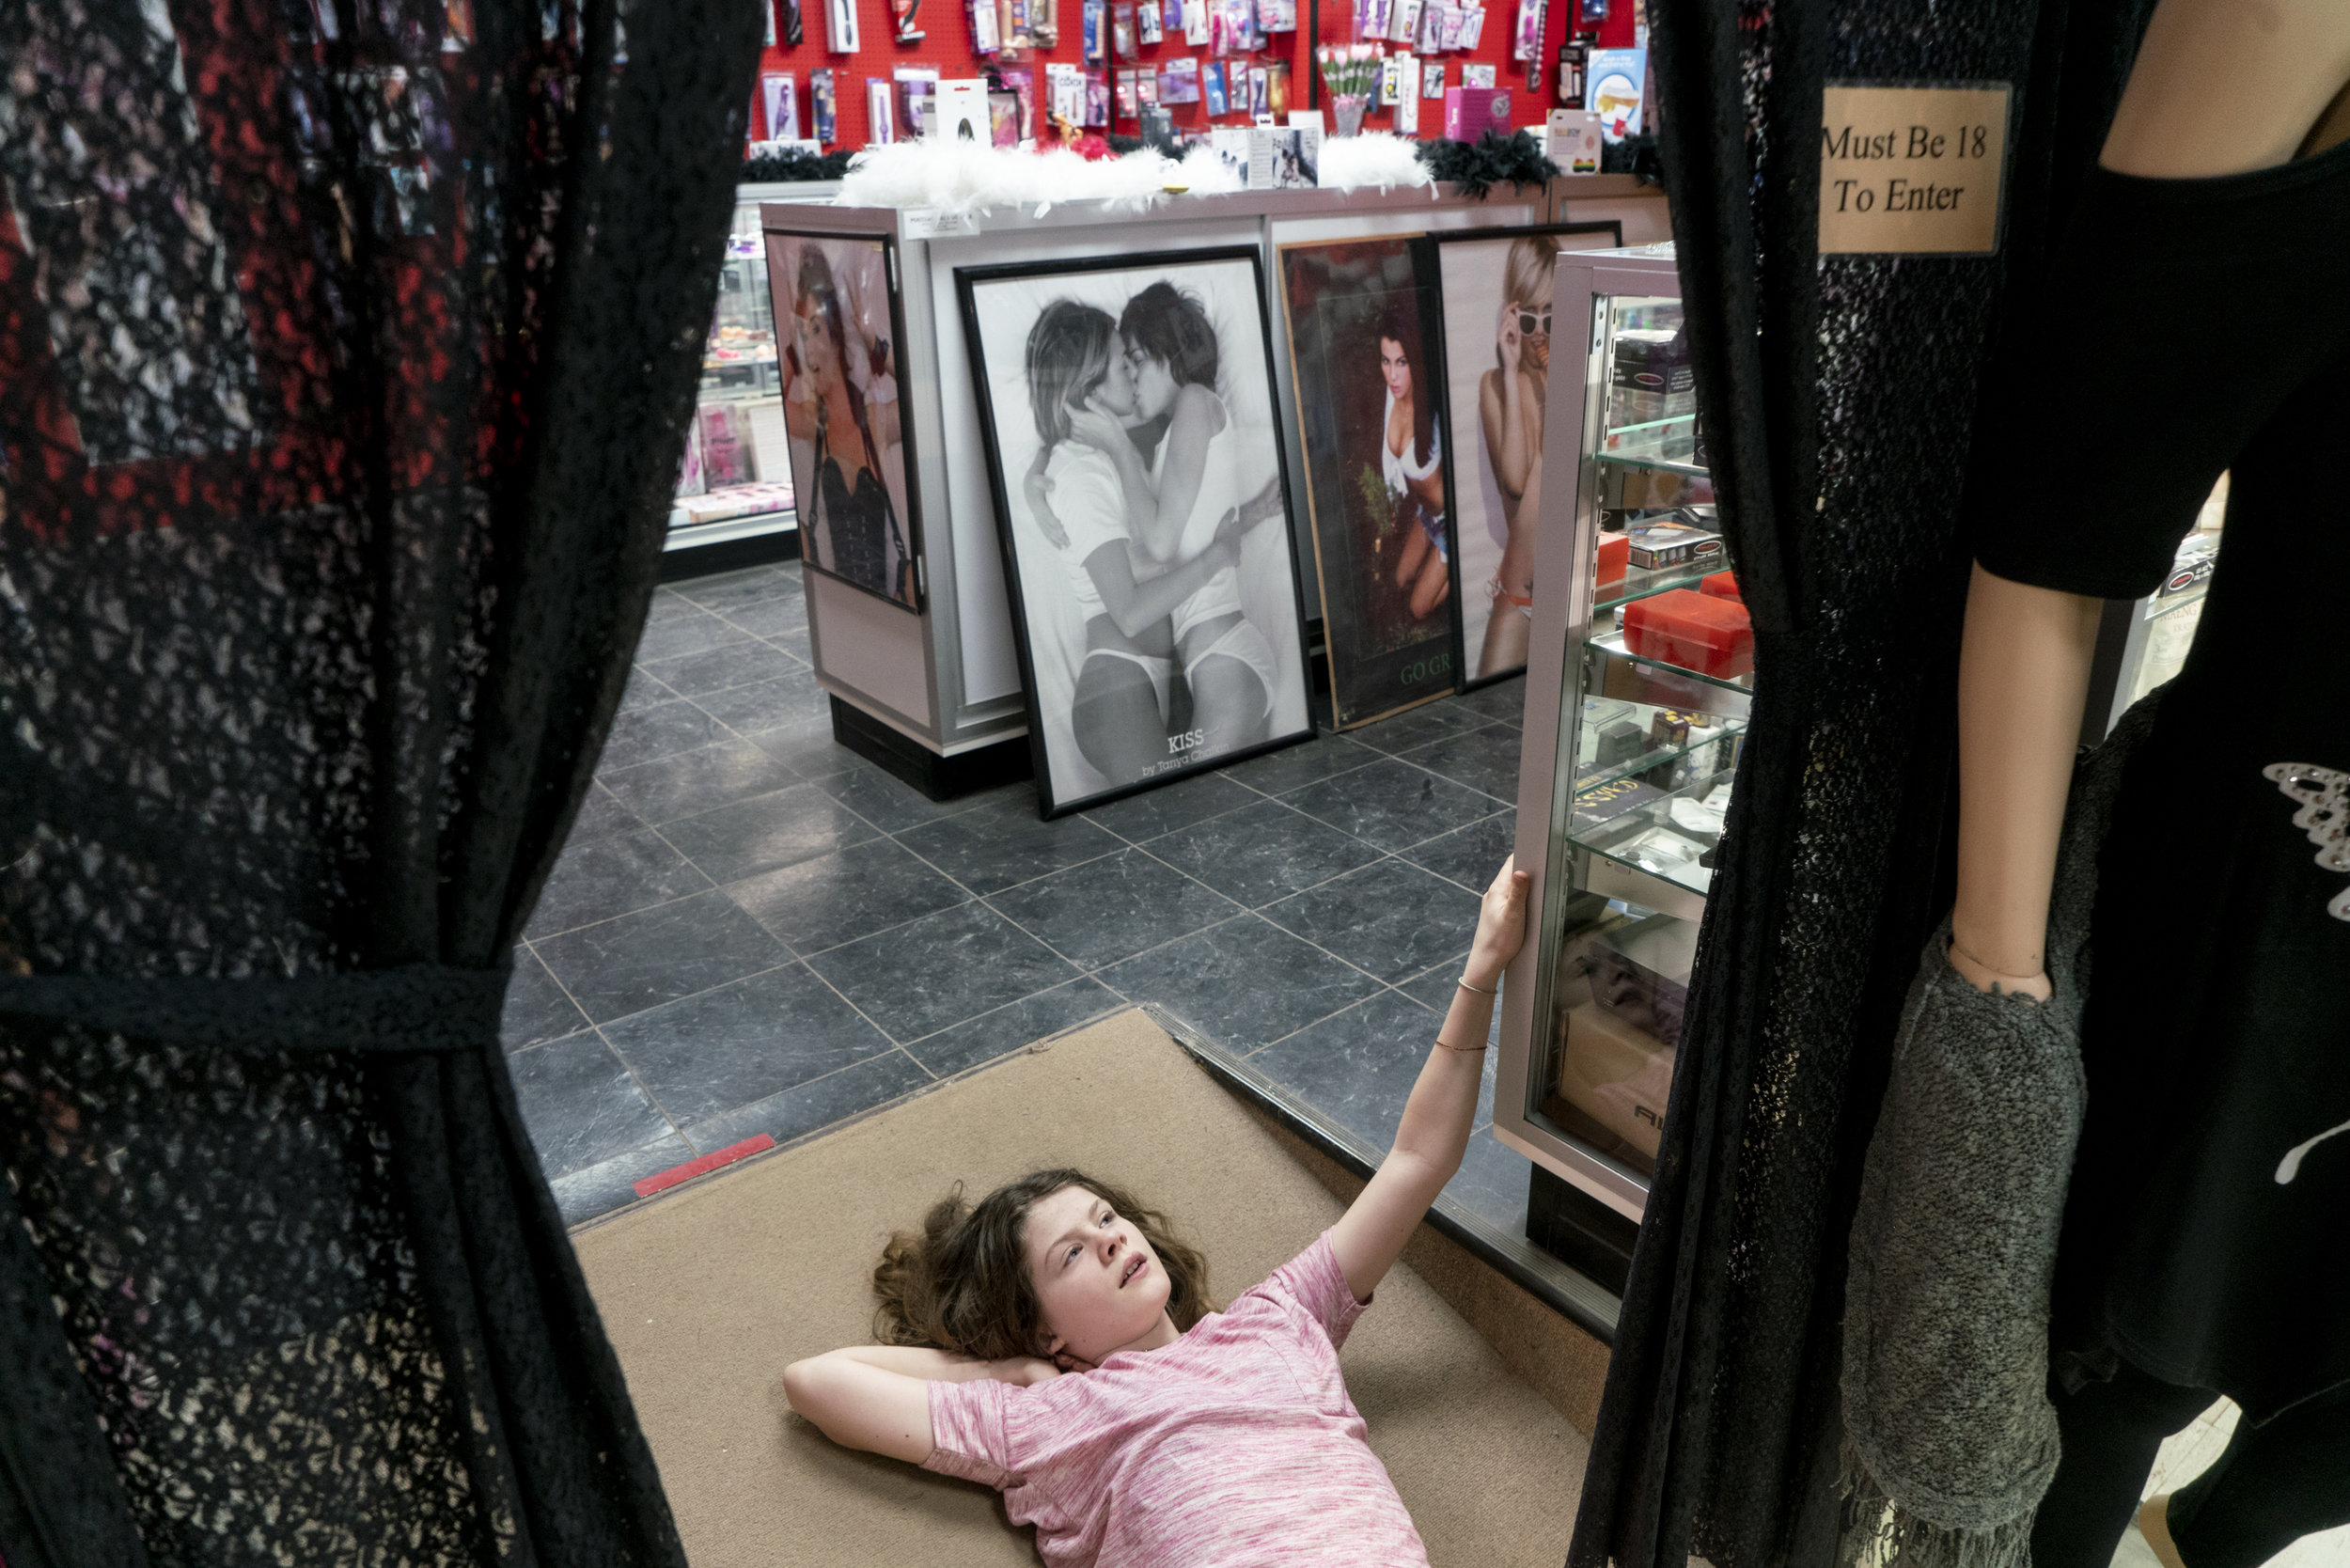 Lizzy Gilchrist, 10, lays in the doorway to the adult only section of her family's shop. Gilchrist Convenient Store sells pipes, CBD products and sex toys, though they don't sell alcohol. The family says their products reflect customer demand, not personal values.